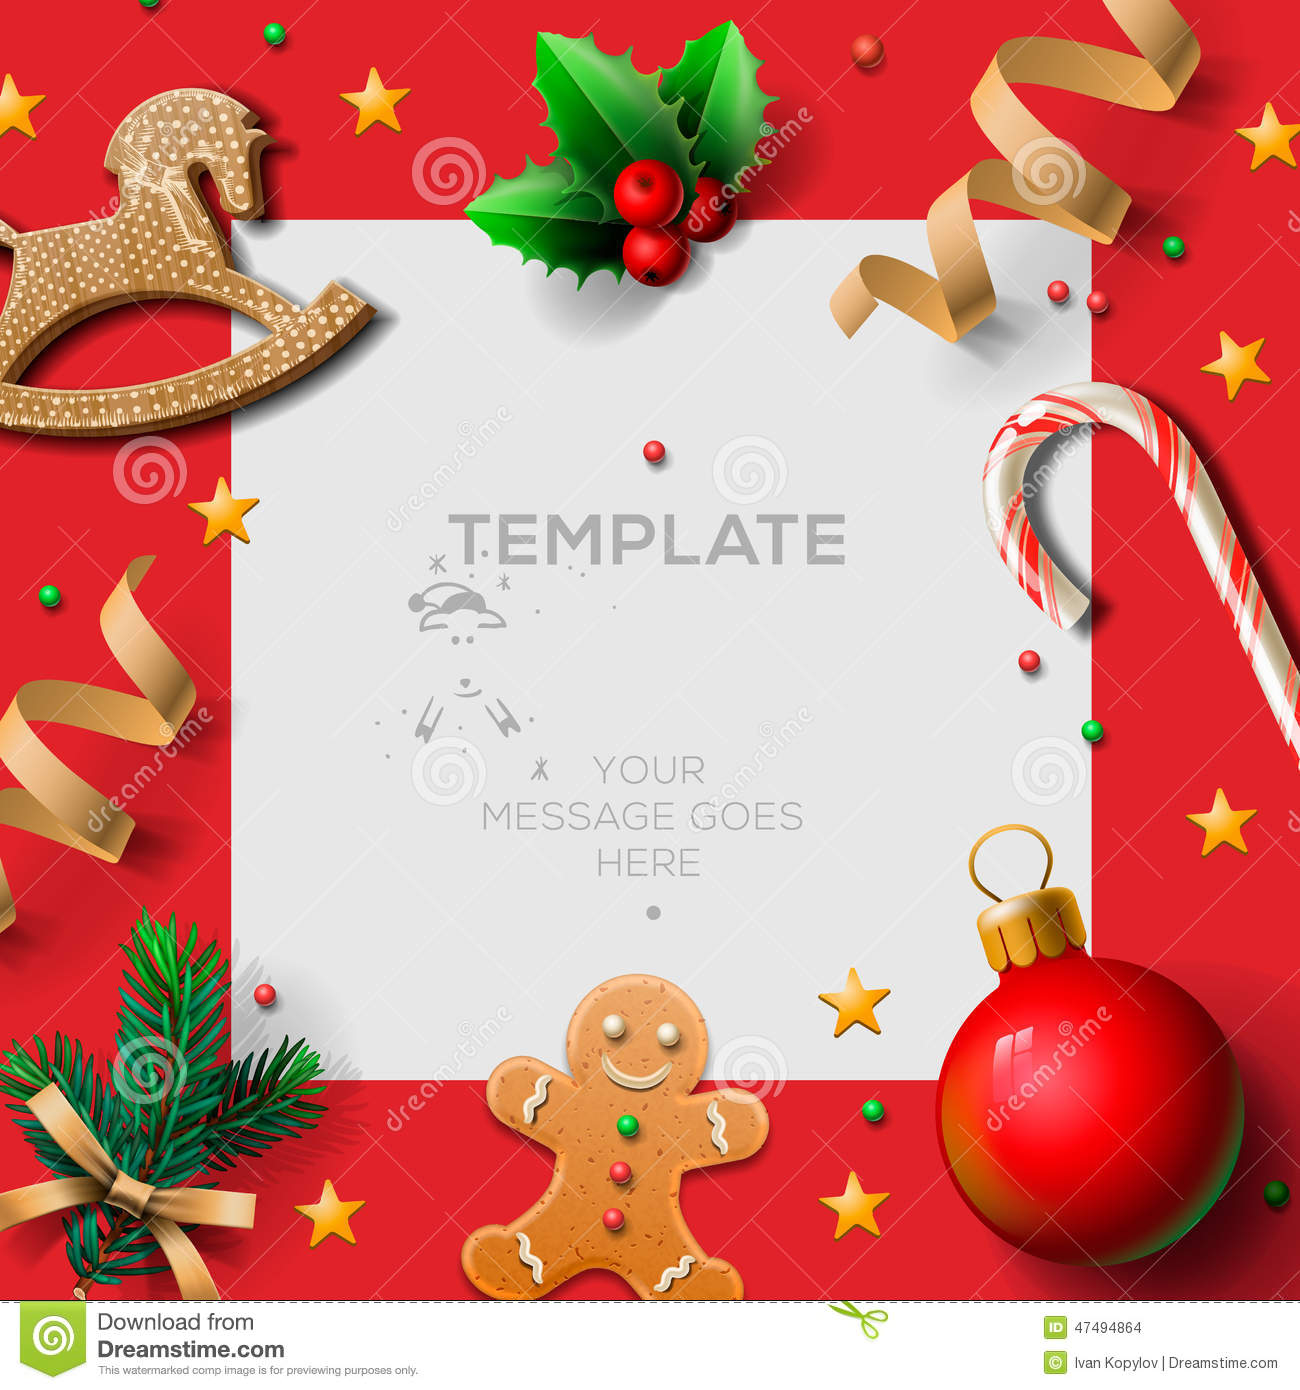 Merry Christmas Festive Template With Gingerbread Men And Christmas